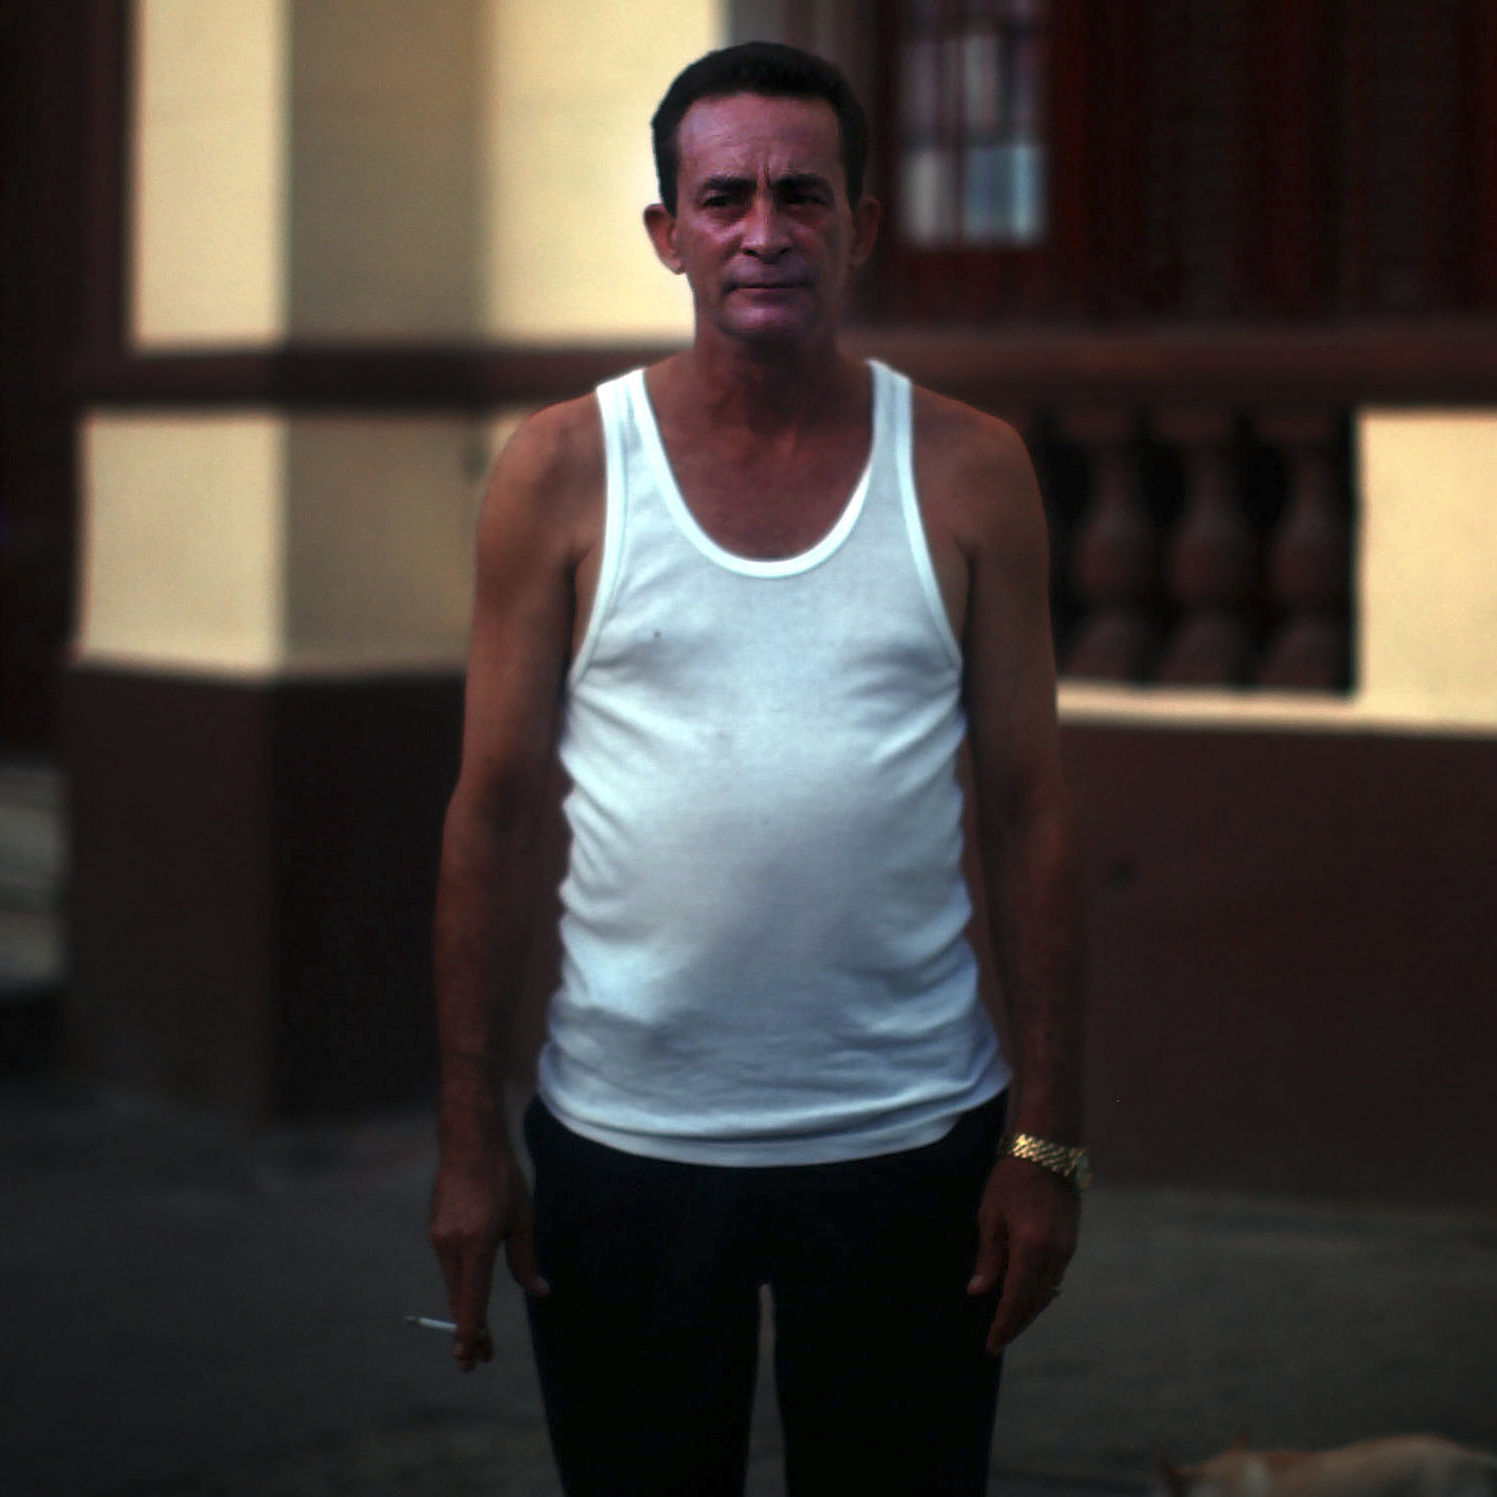 05: Man in white tank top